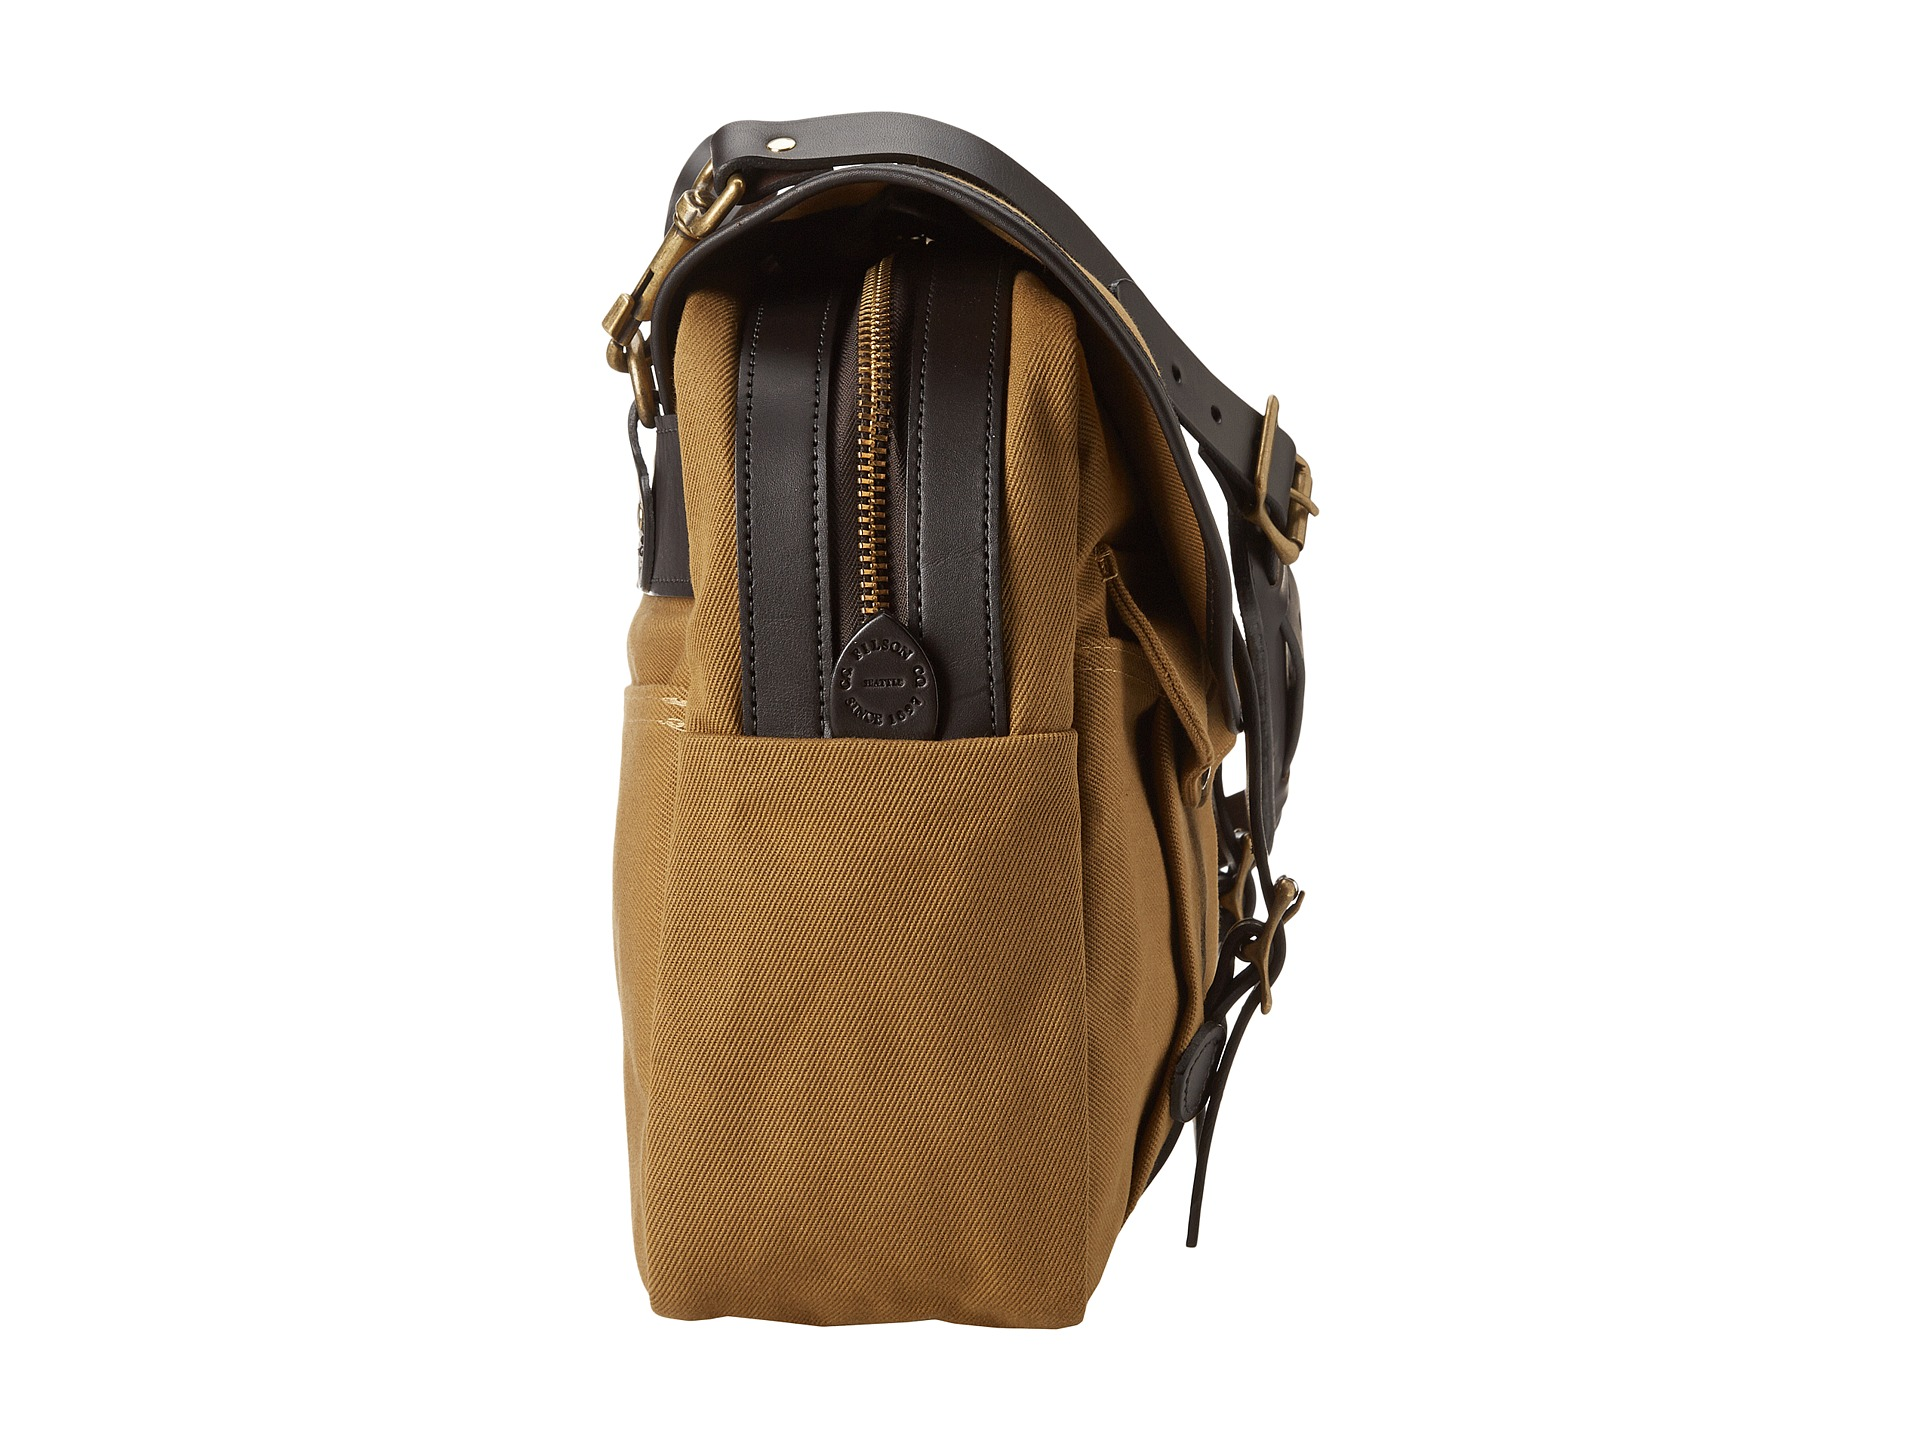 Find great deals on eBay for small carry bags. Shop with confidence. Skip to main content. eBay: Shop by category. Shop by category. Enter your search keyword TUMI Brown LEATHER SMALL CARRY ON BAG /DUFFLE HOLD Super Strong & Very soft. Tumi · Duffle Bags.